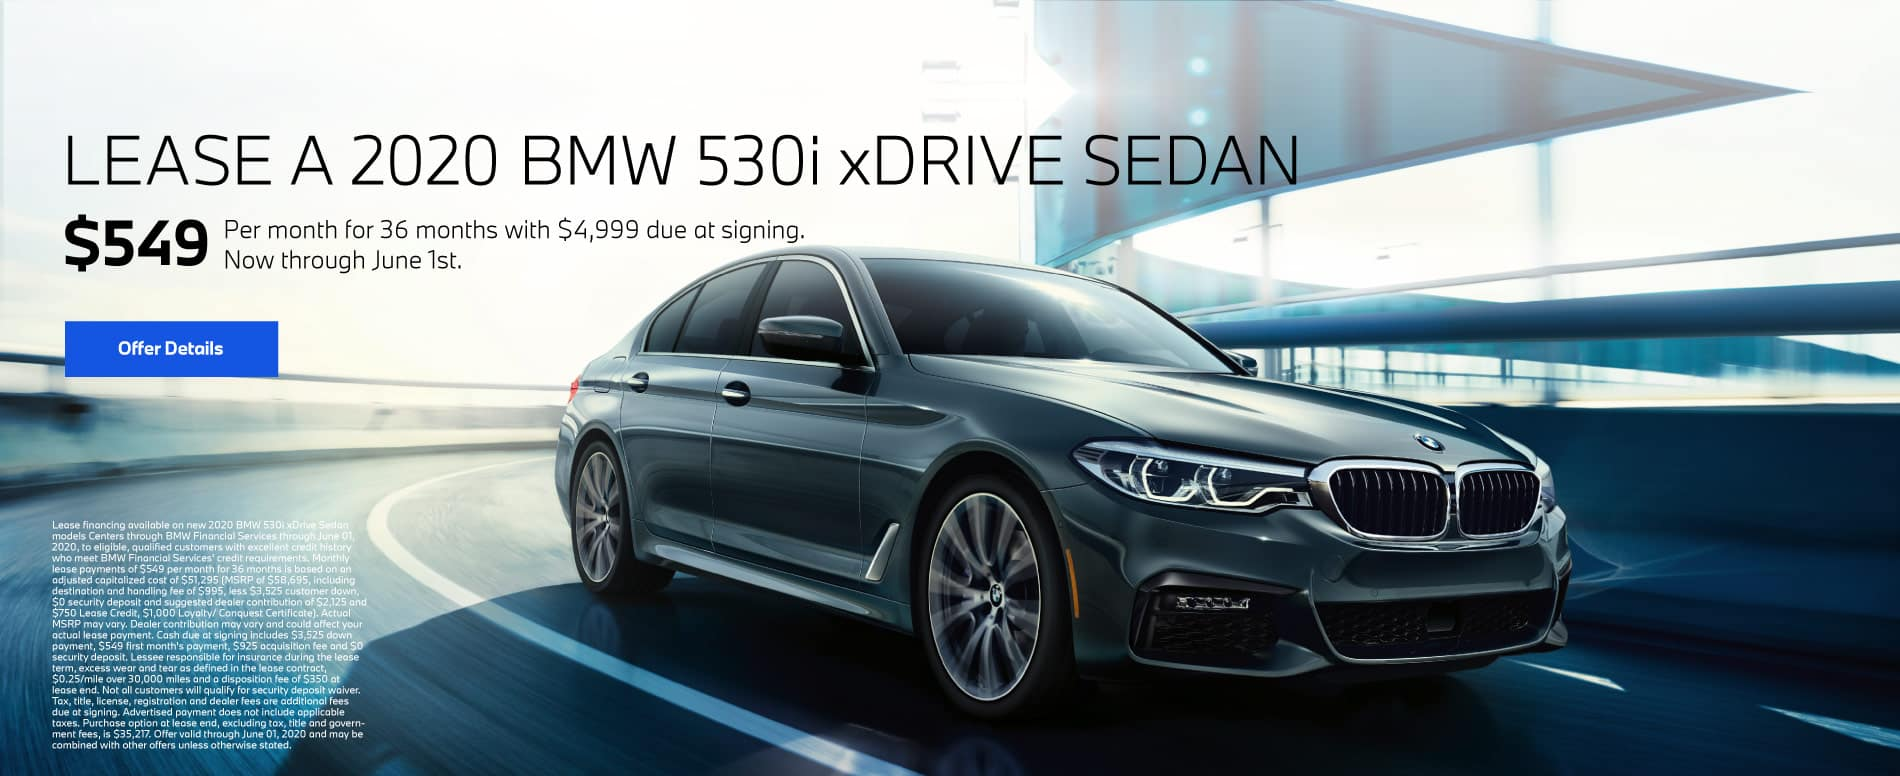 Lease a 2020 BMW 530i xDRIVE Sedan for $549 per month for 36 months with $4,999 due at signing - Click To View Inventory